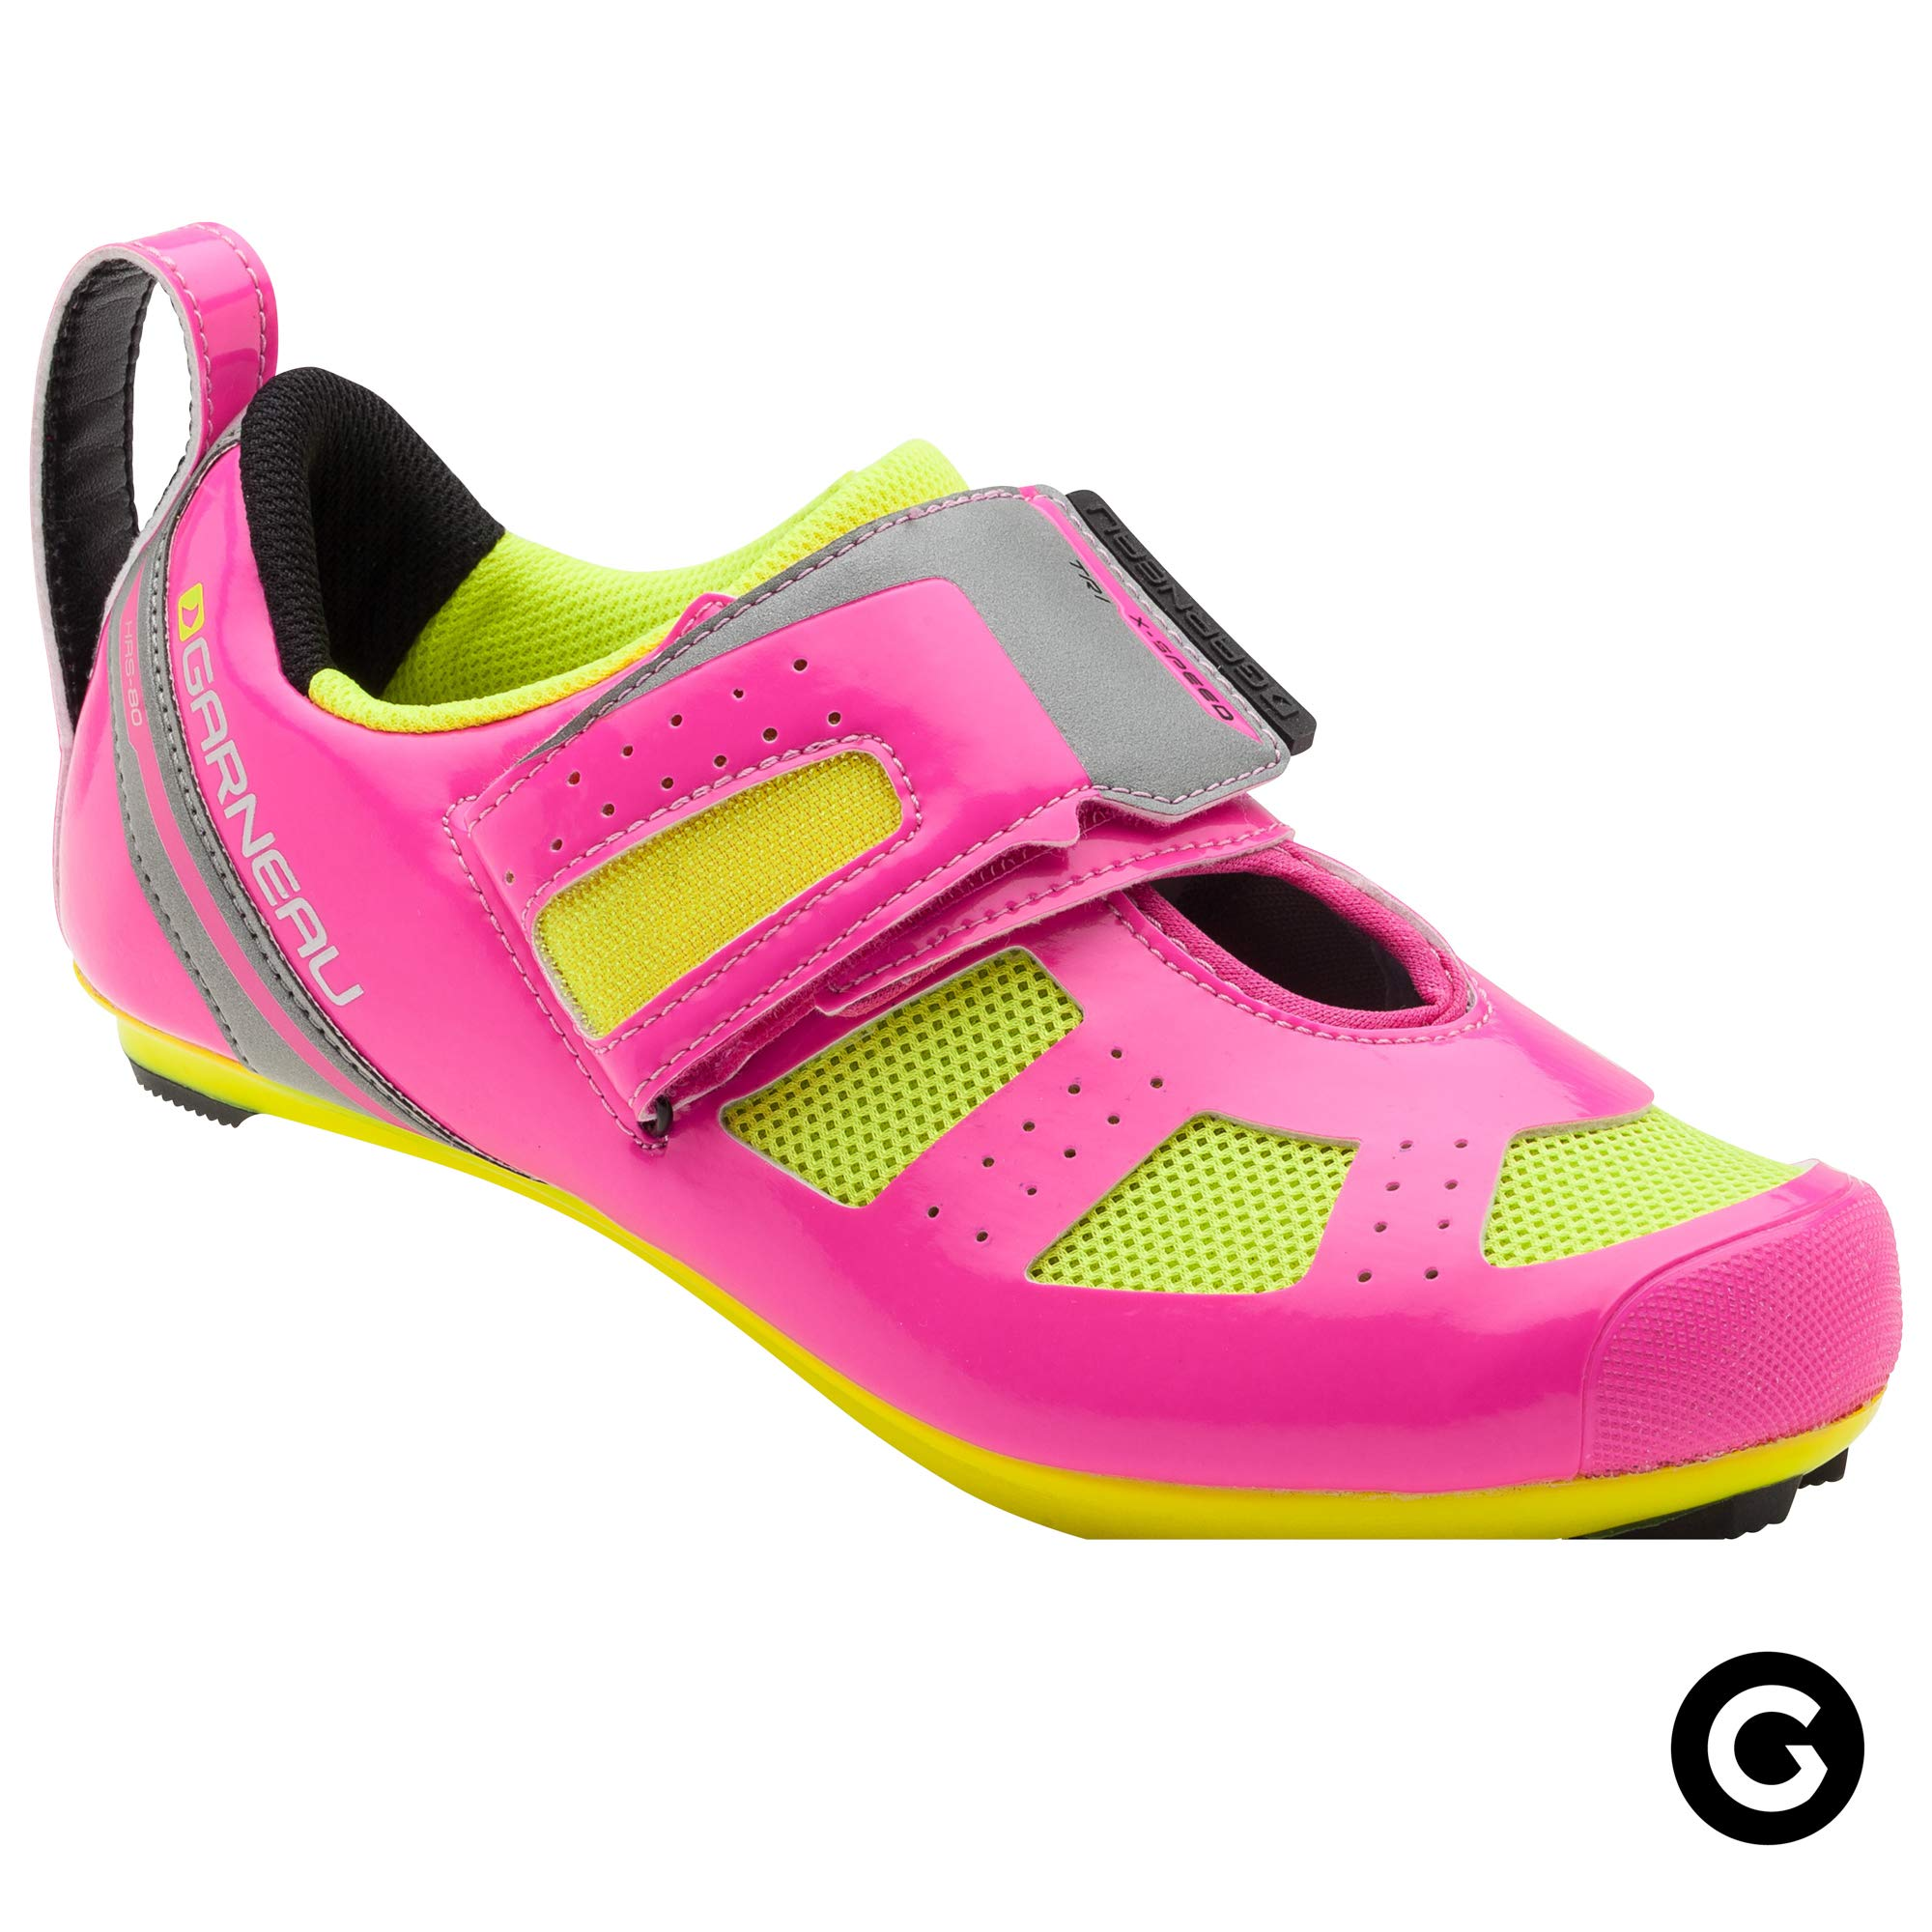 Louis Garneau Women's Tri X-Speed III Triathlon Cycling Shoes for Racing and Indoor Biking, Compatible with Major Road and SPD Pedals, Pink Glow/Bright Yellow, US (9), EU (40) by Louis Garneau